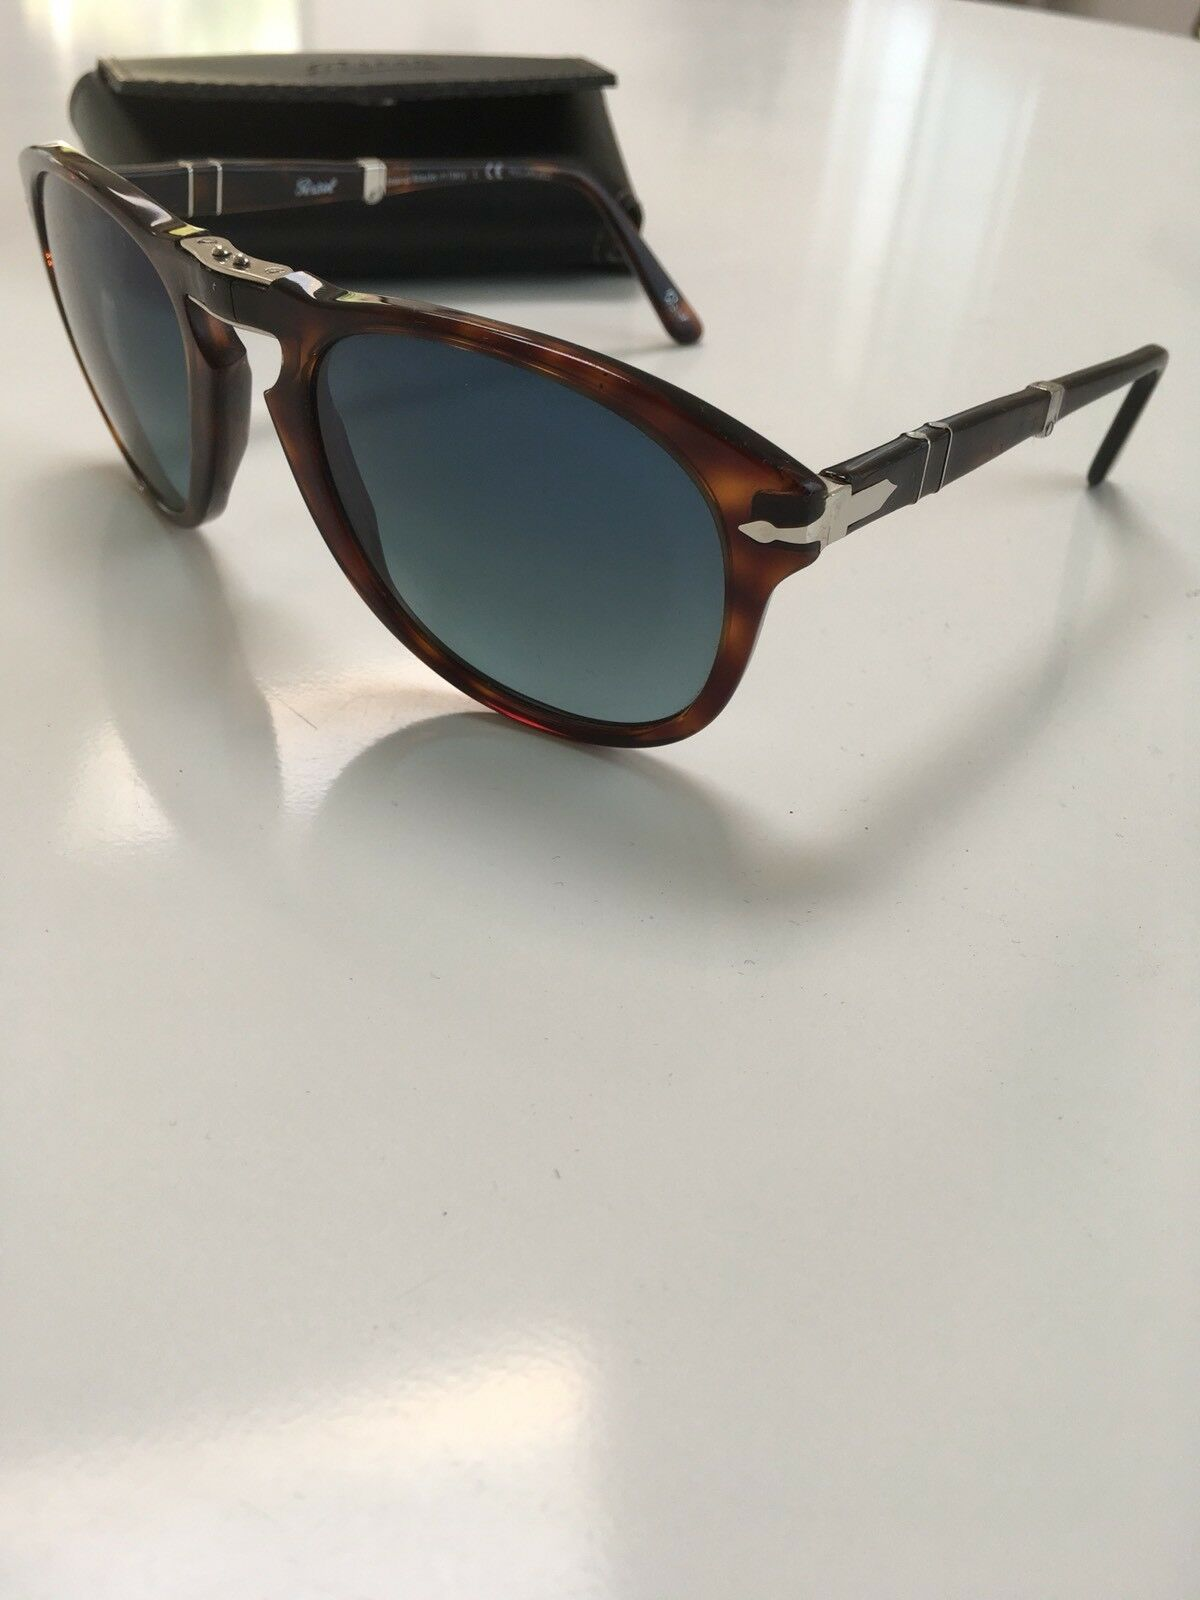 5a6d087c8832 Persol 714 24/53 54 21 140 2P Folding Polarized Sunglasses Made In Italy 1  of 11Only 1 available ...